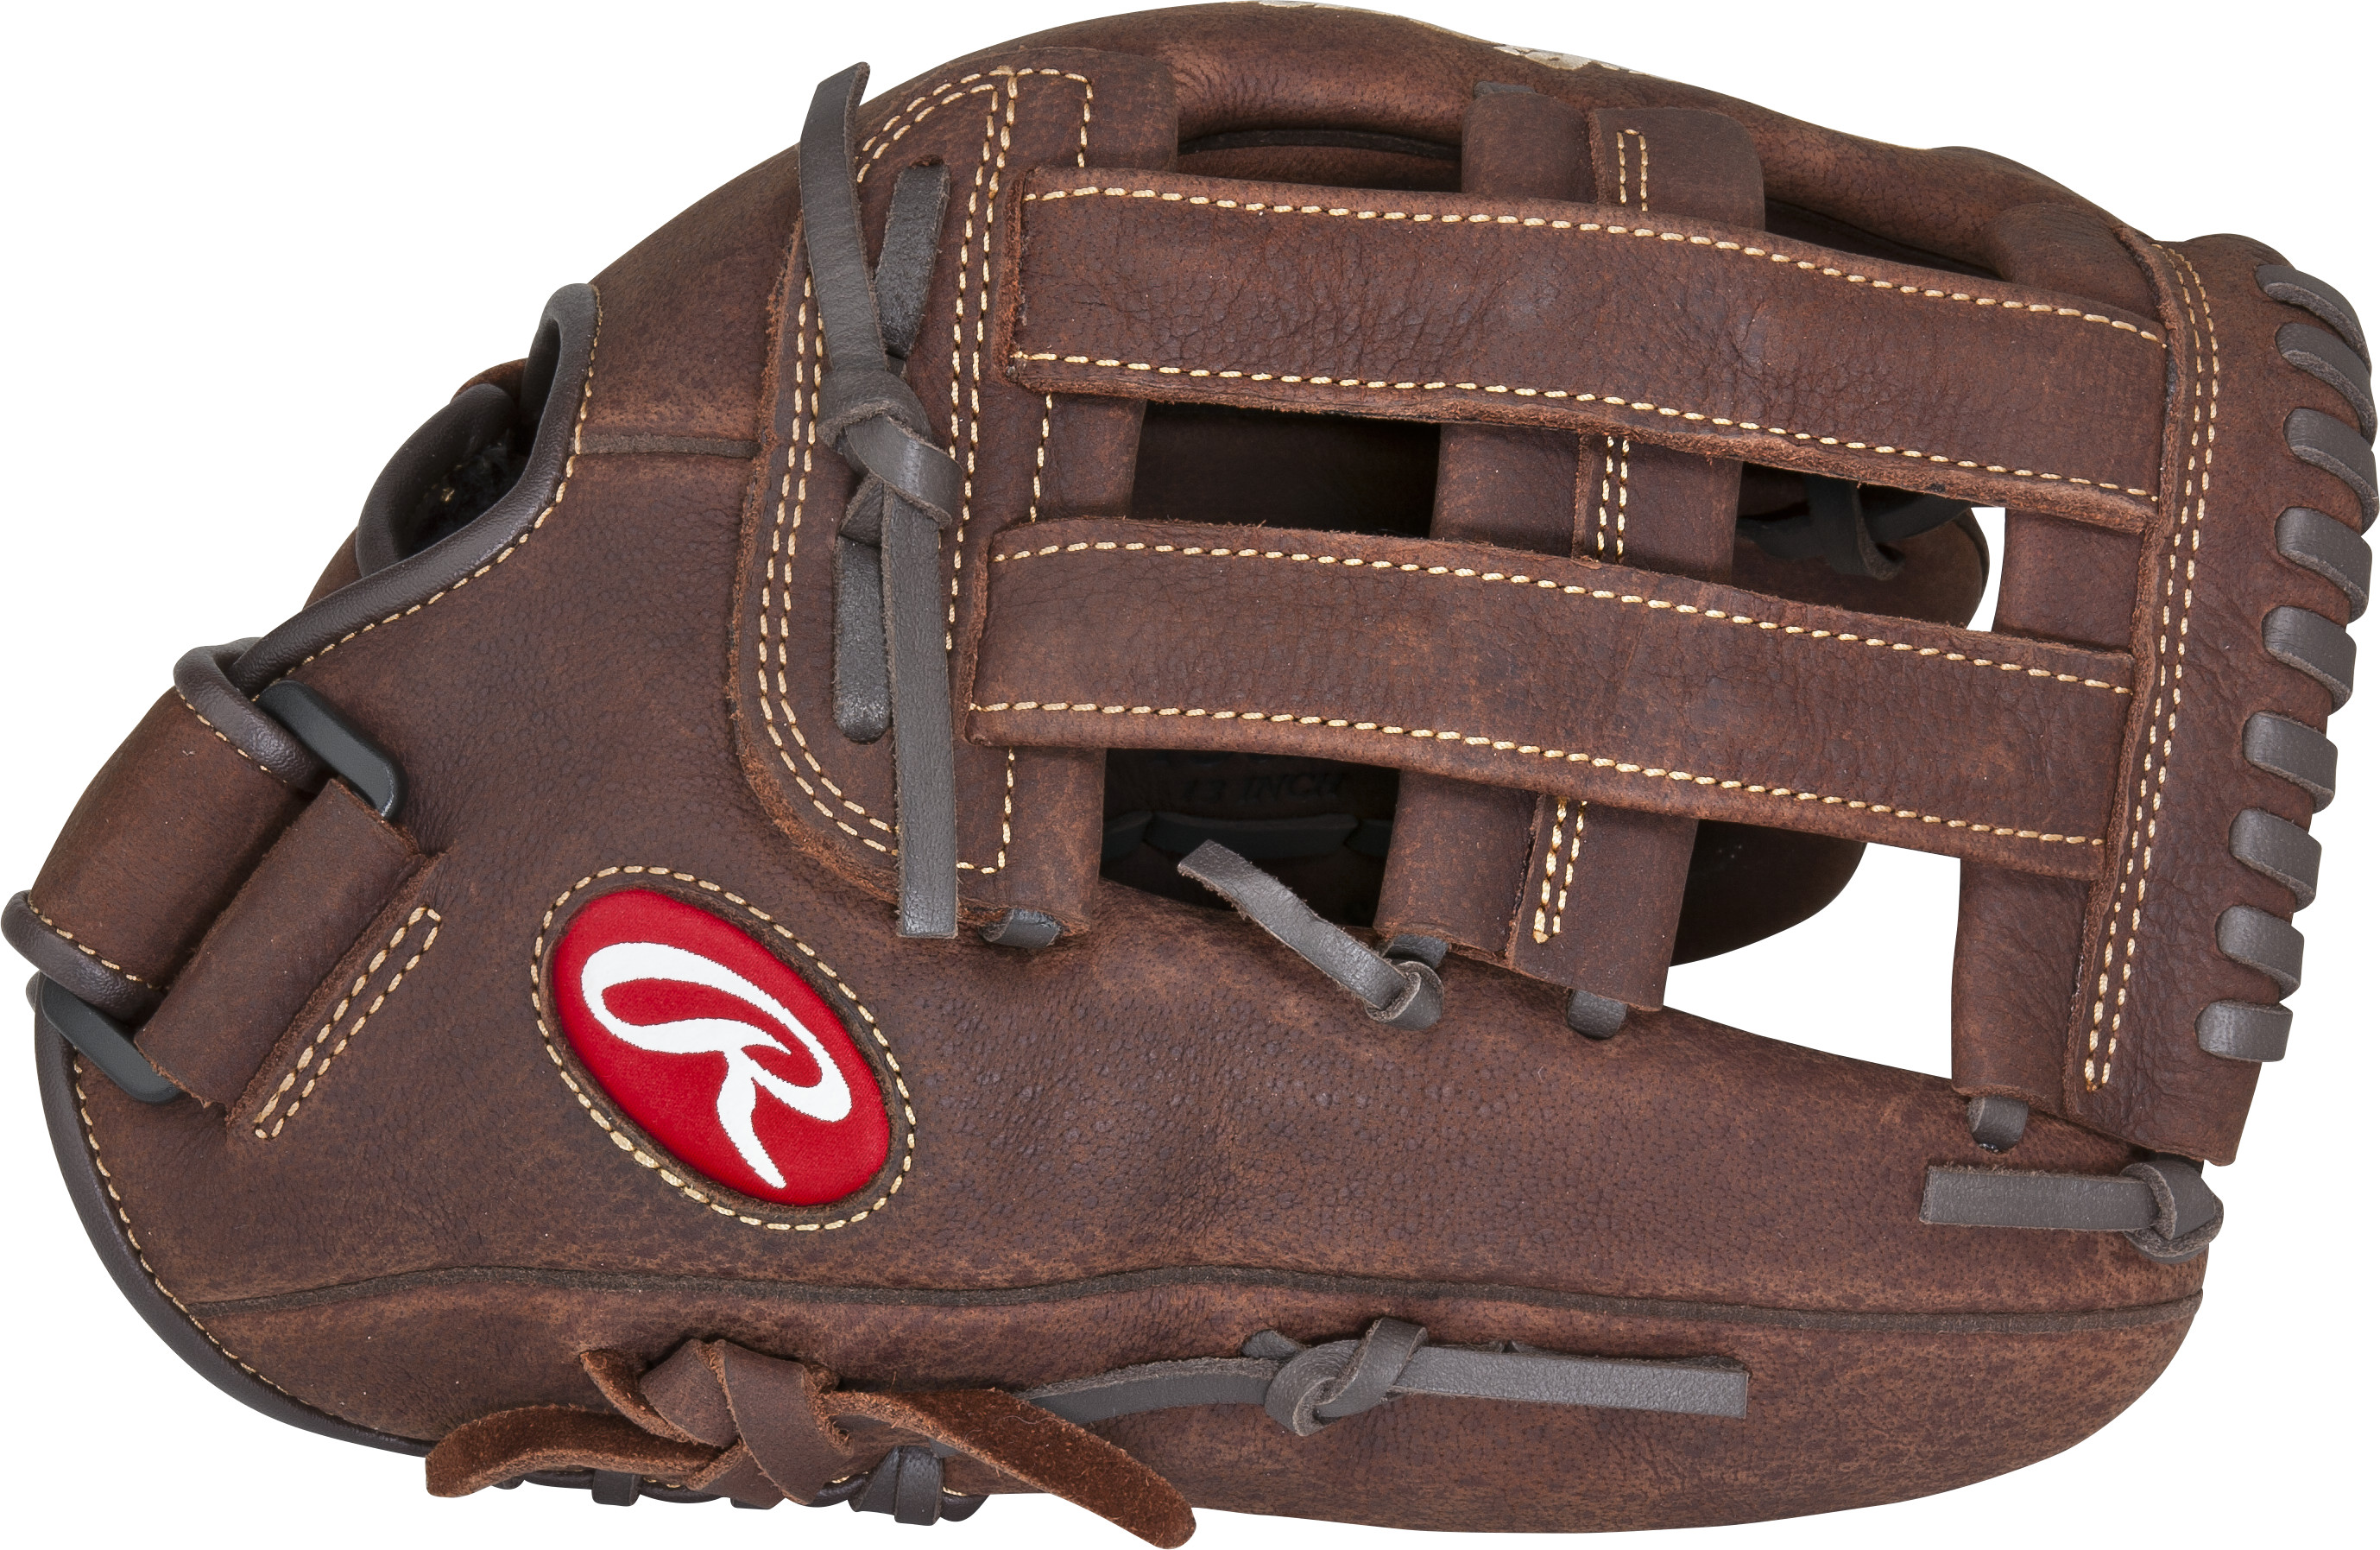 http://www.bestbatdeals.com/images/gloves/rawlings/P130HFL_thumb.jpg